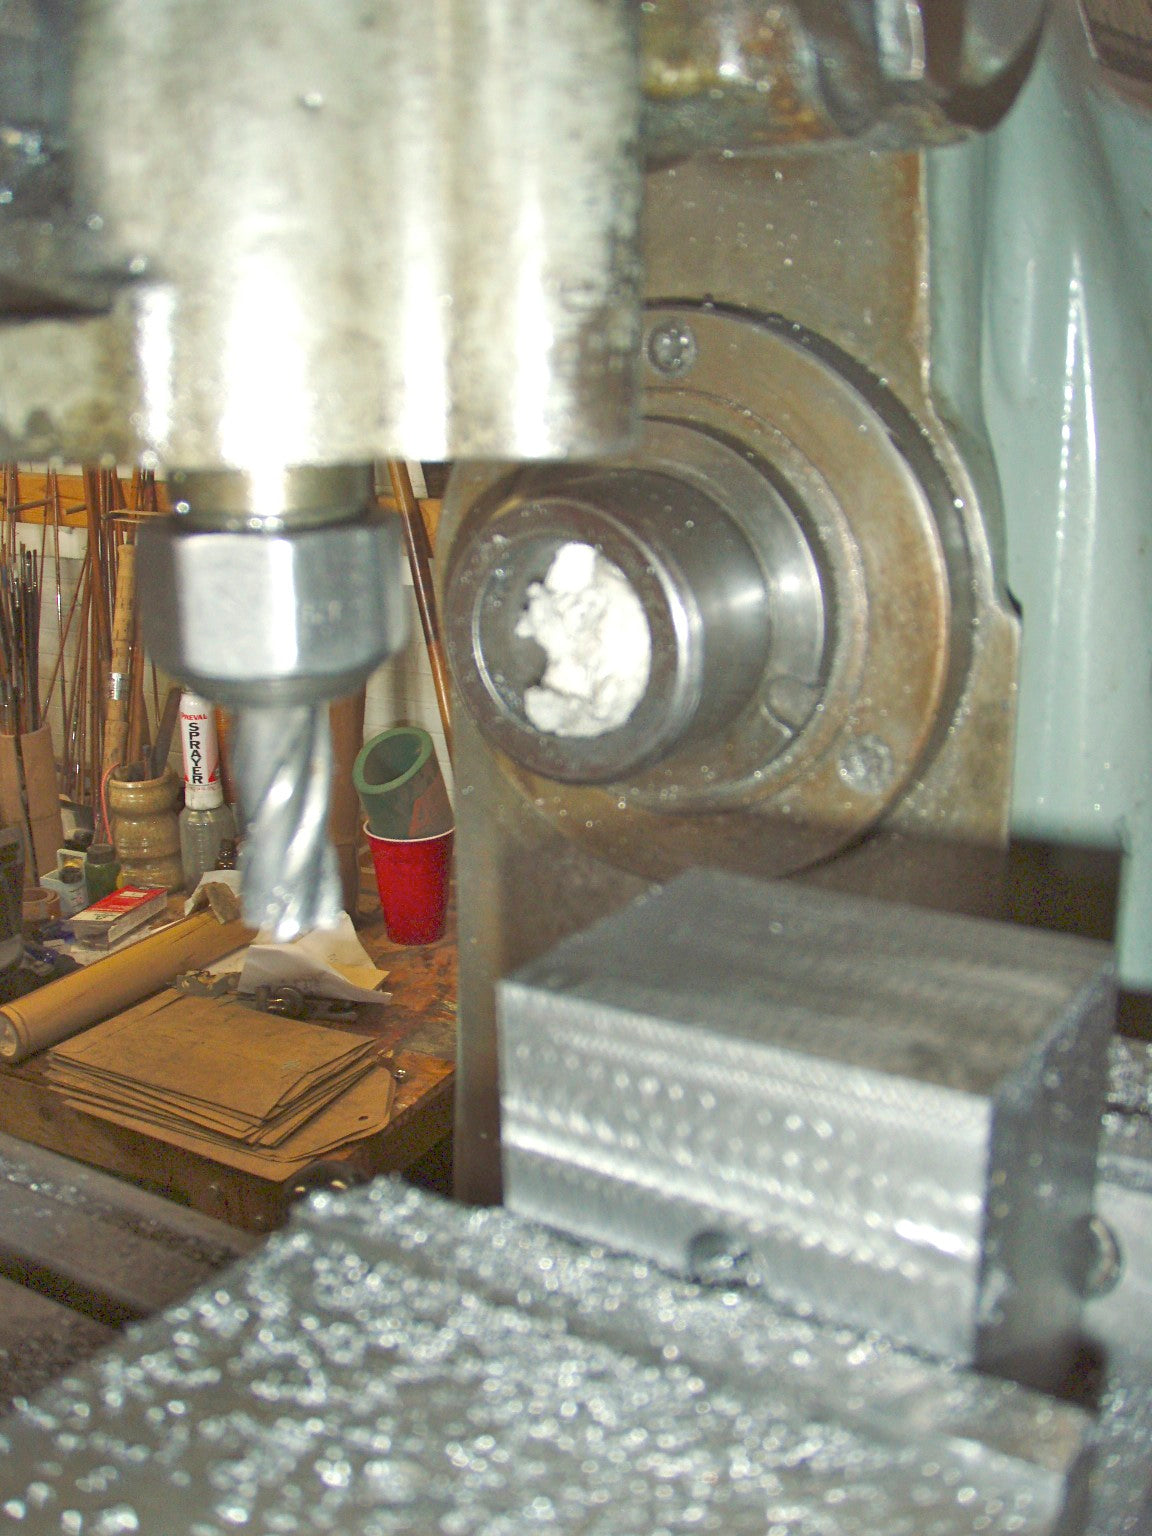 Marc Aroner Machining Tools